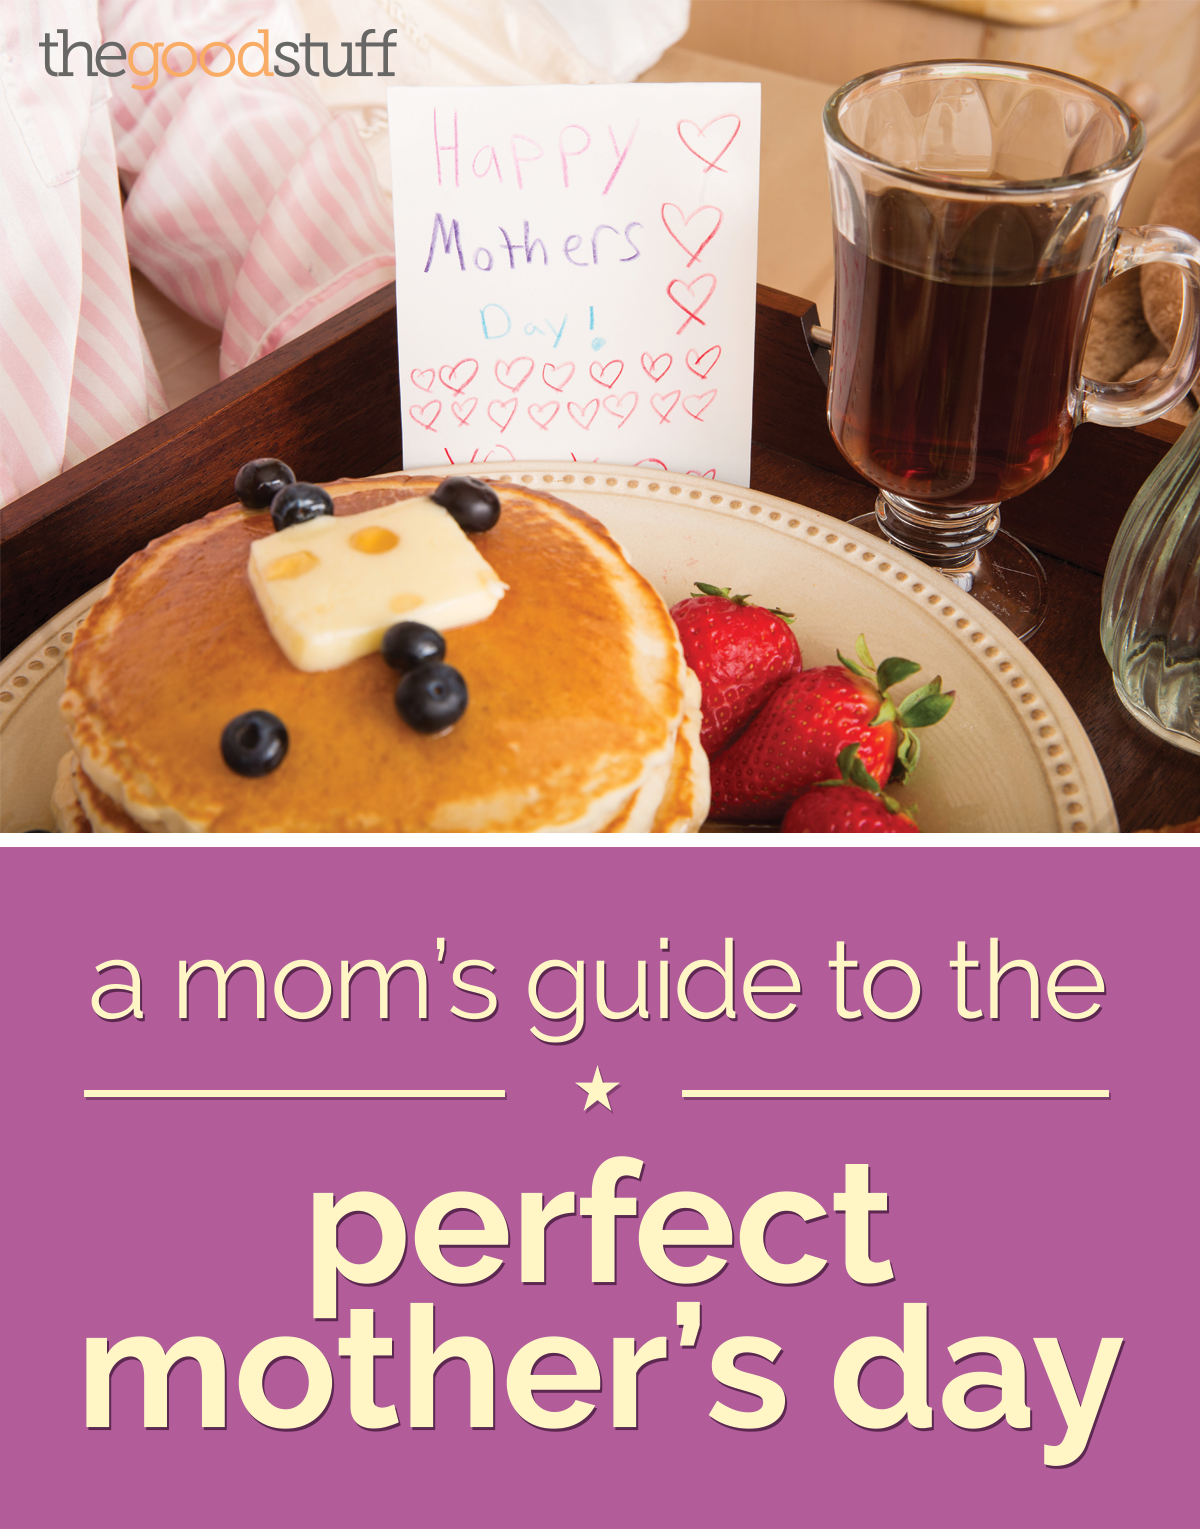 A Mom's Guide to a Perfect Mother's Day | thegoodstuff